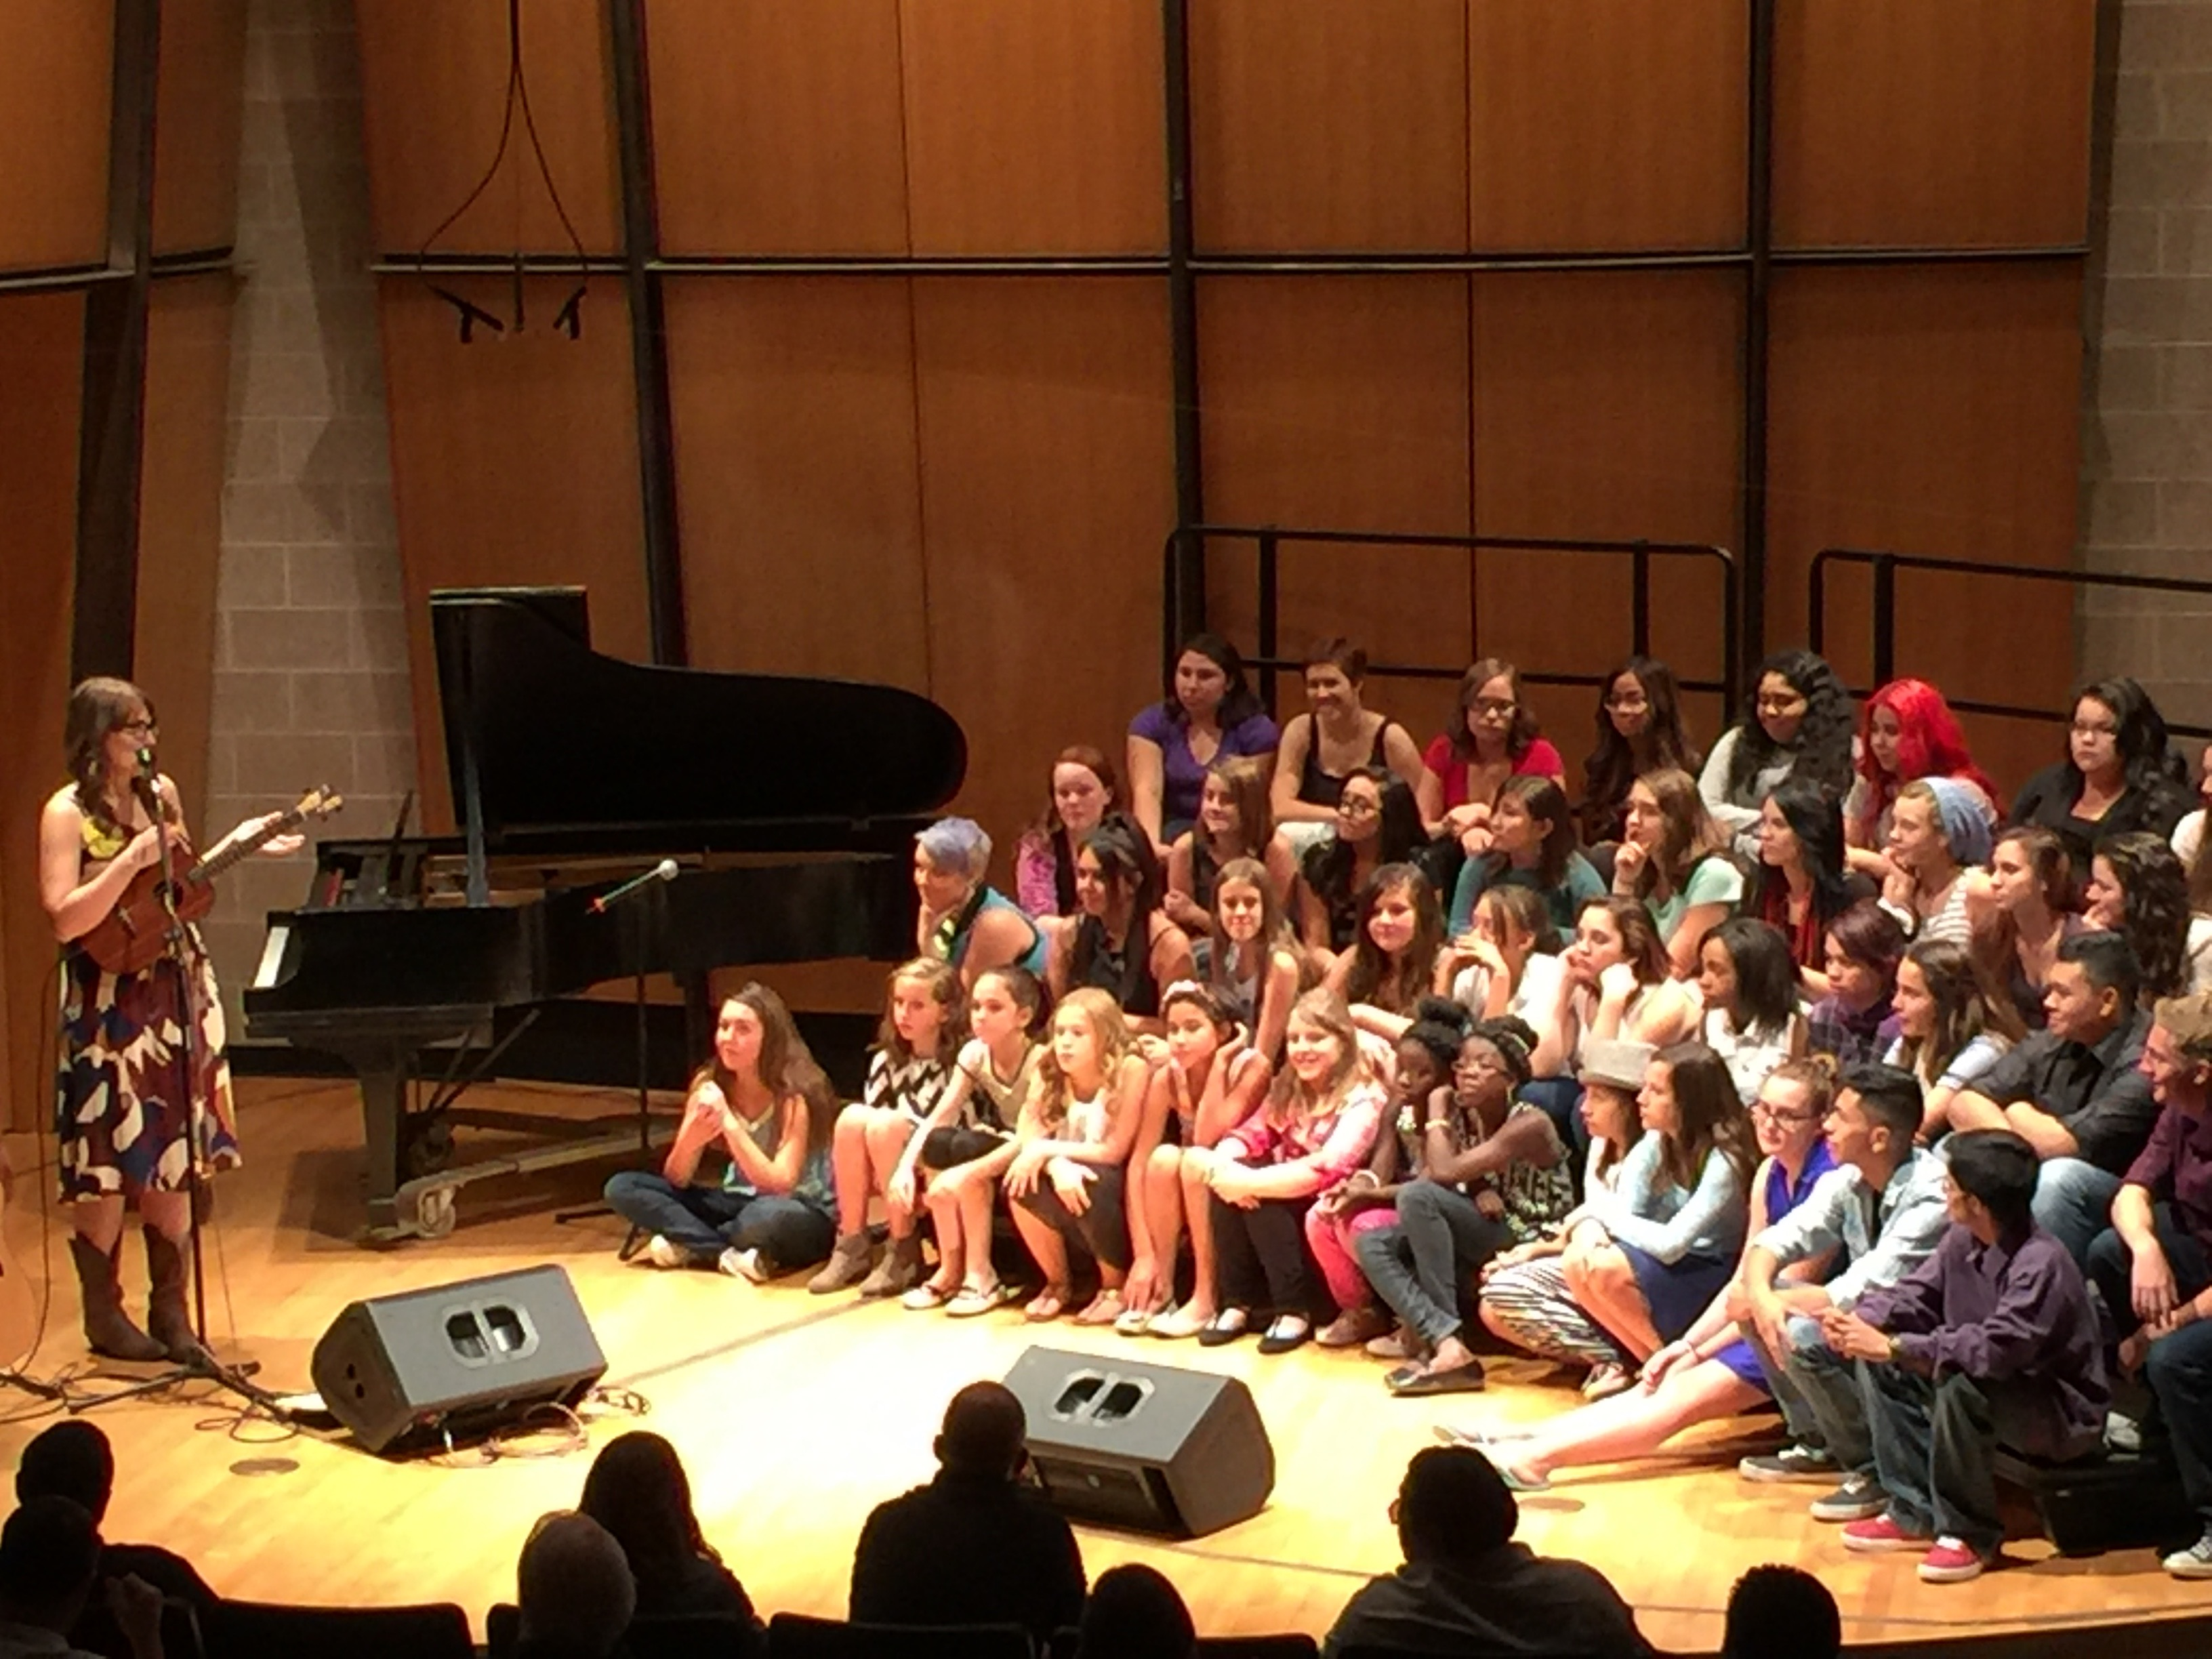 Danielle Ate the Sandwich, in concert with 3 Denver youth choirs in the King Center on September 21, 2015.